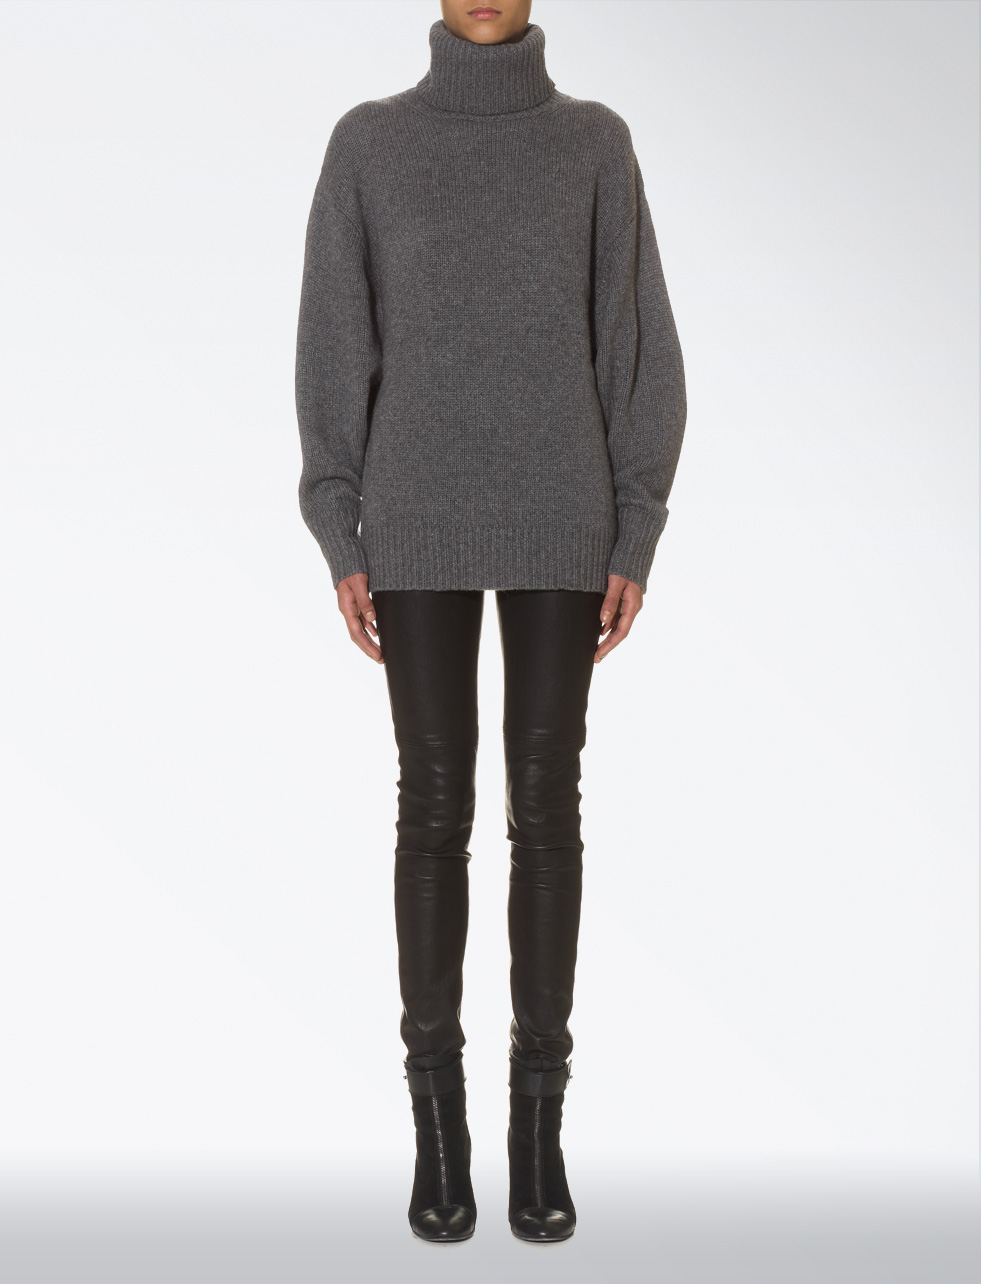 Joseph cashmere roll-neck sweater Best Place For Sale xAiHA